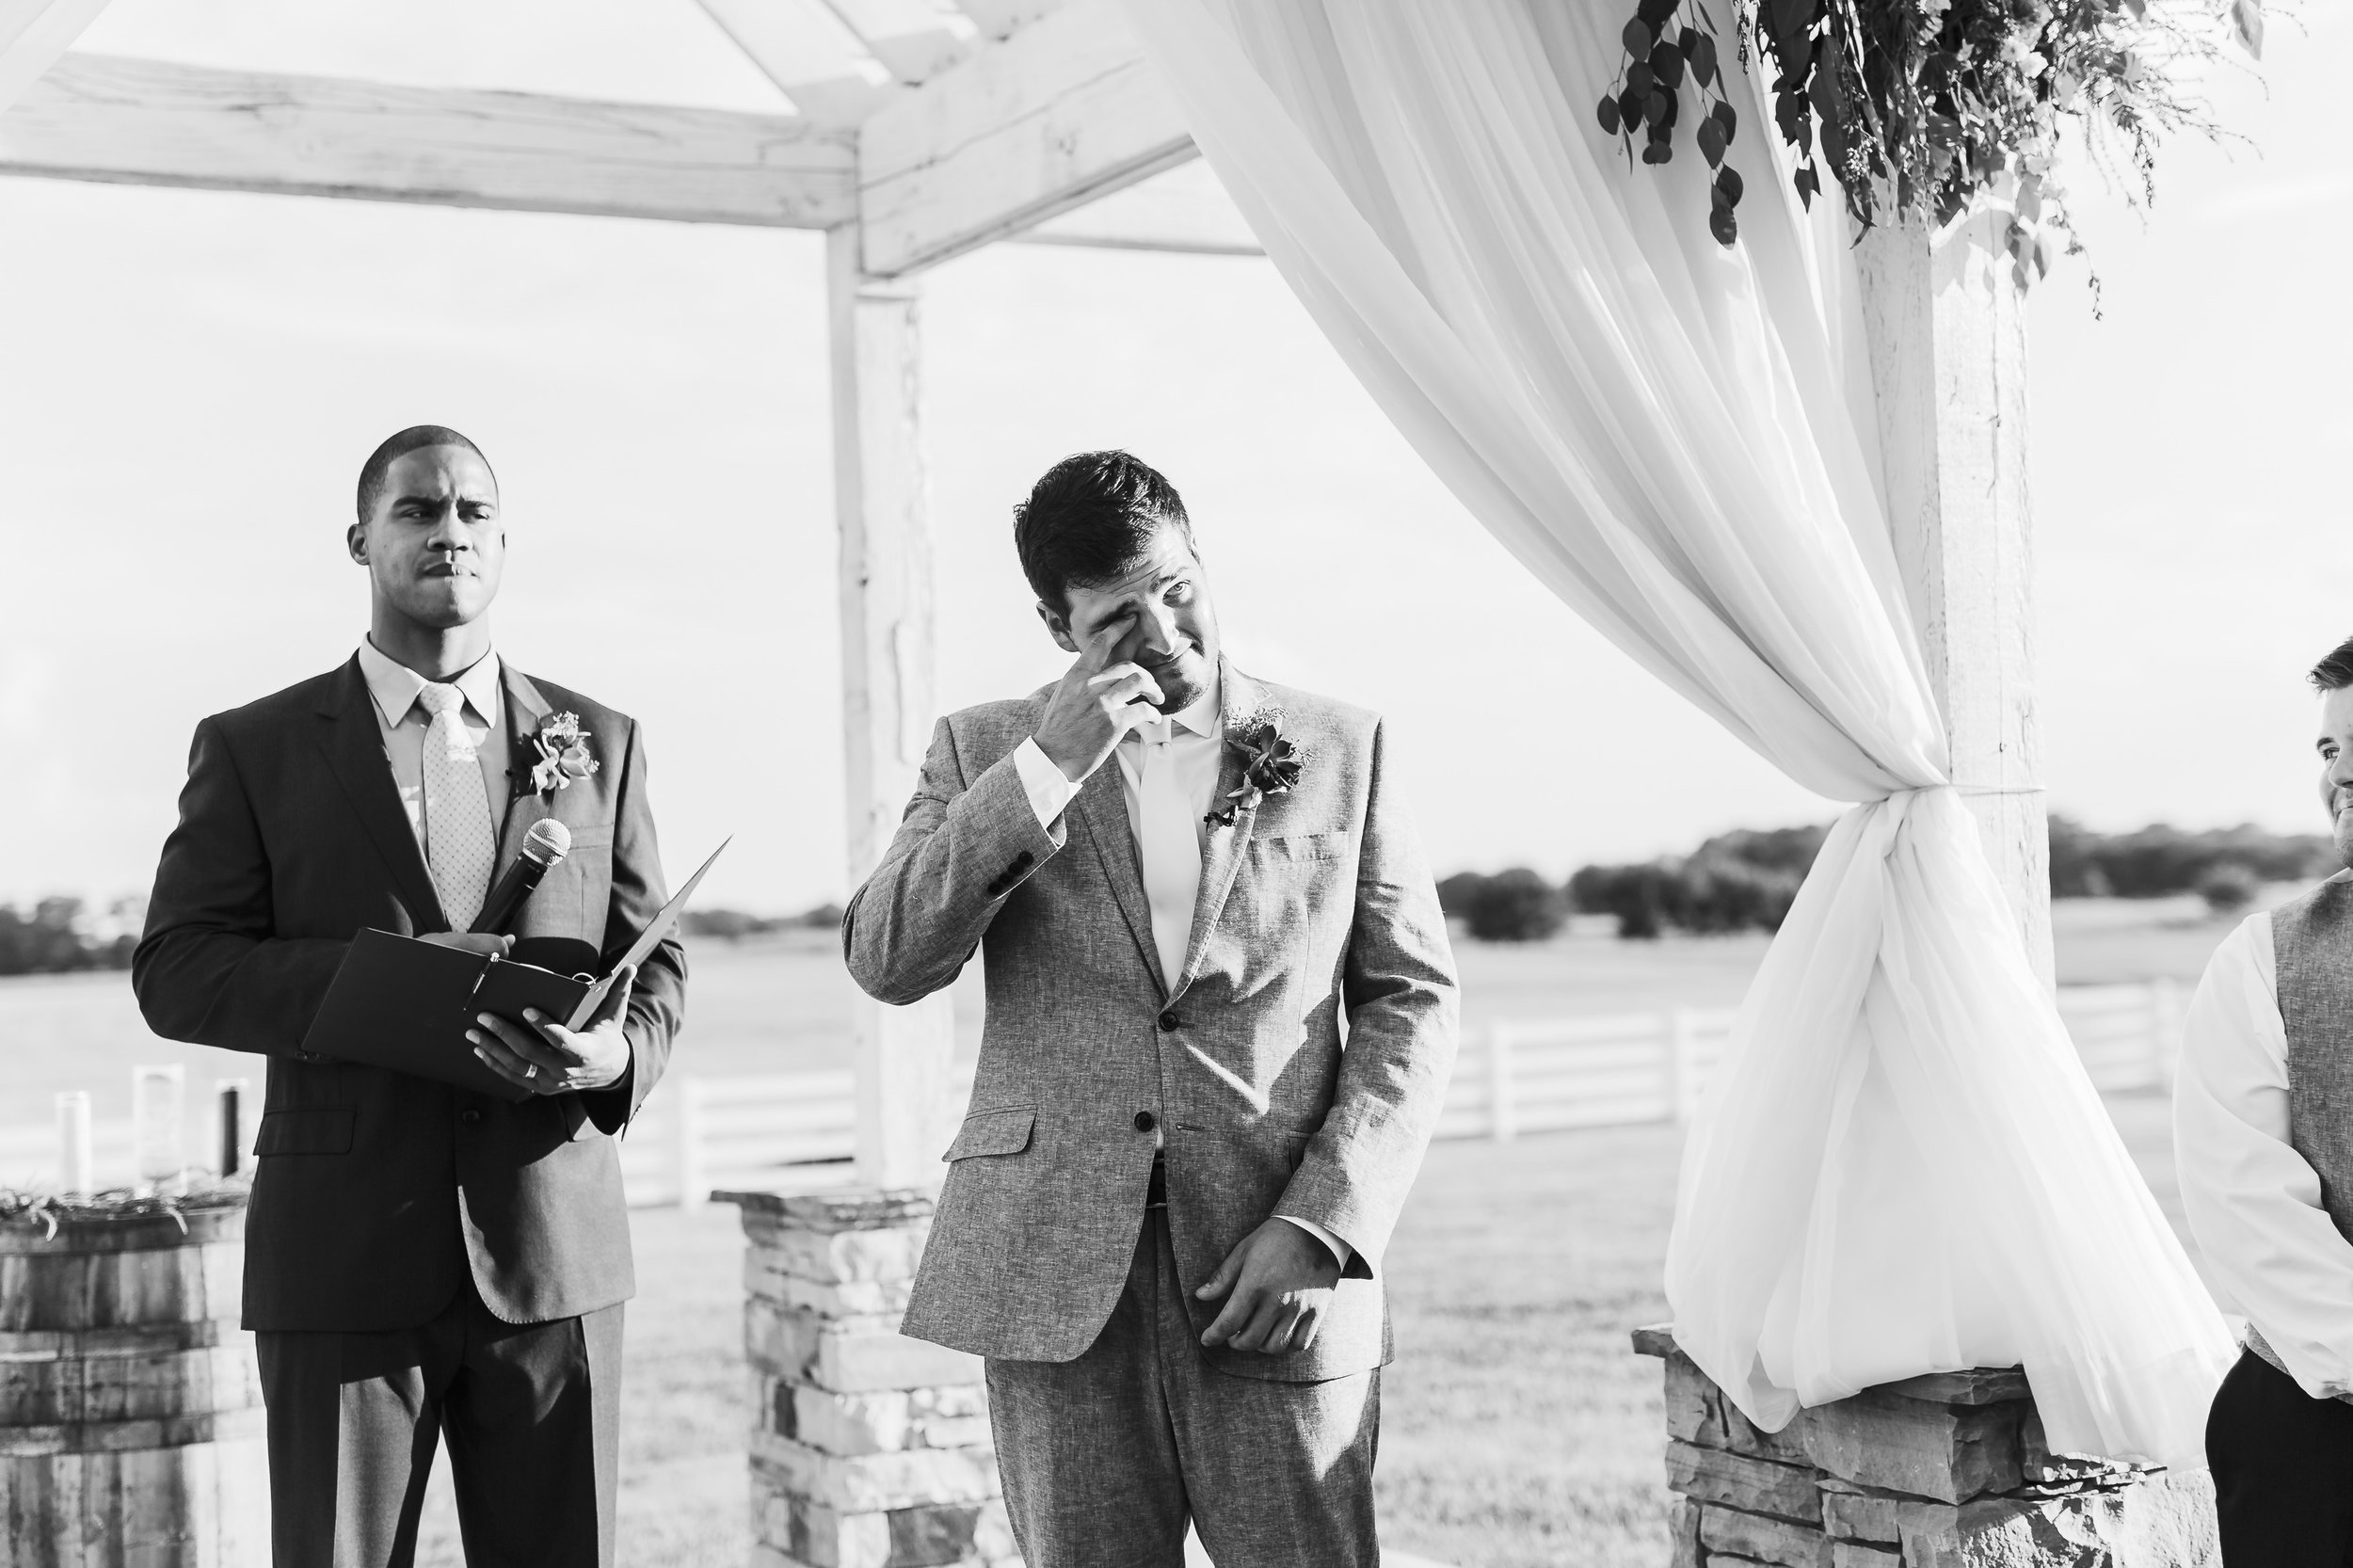 okc wedding photographer, oklahoma city, oklahoma weddings, norman, lgbt friendly, crying groom, the manor wedding, edmond wedding